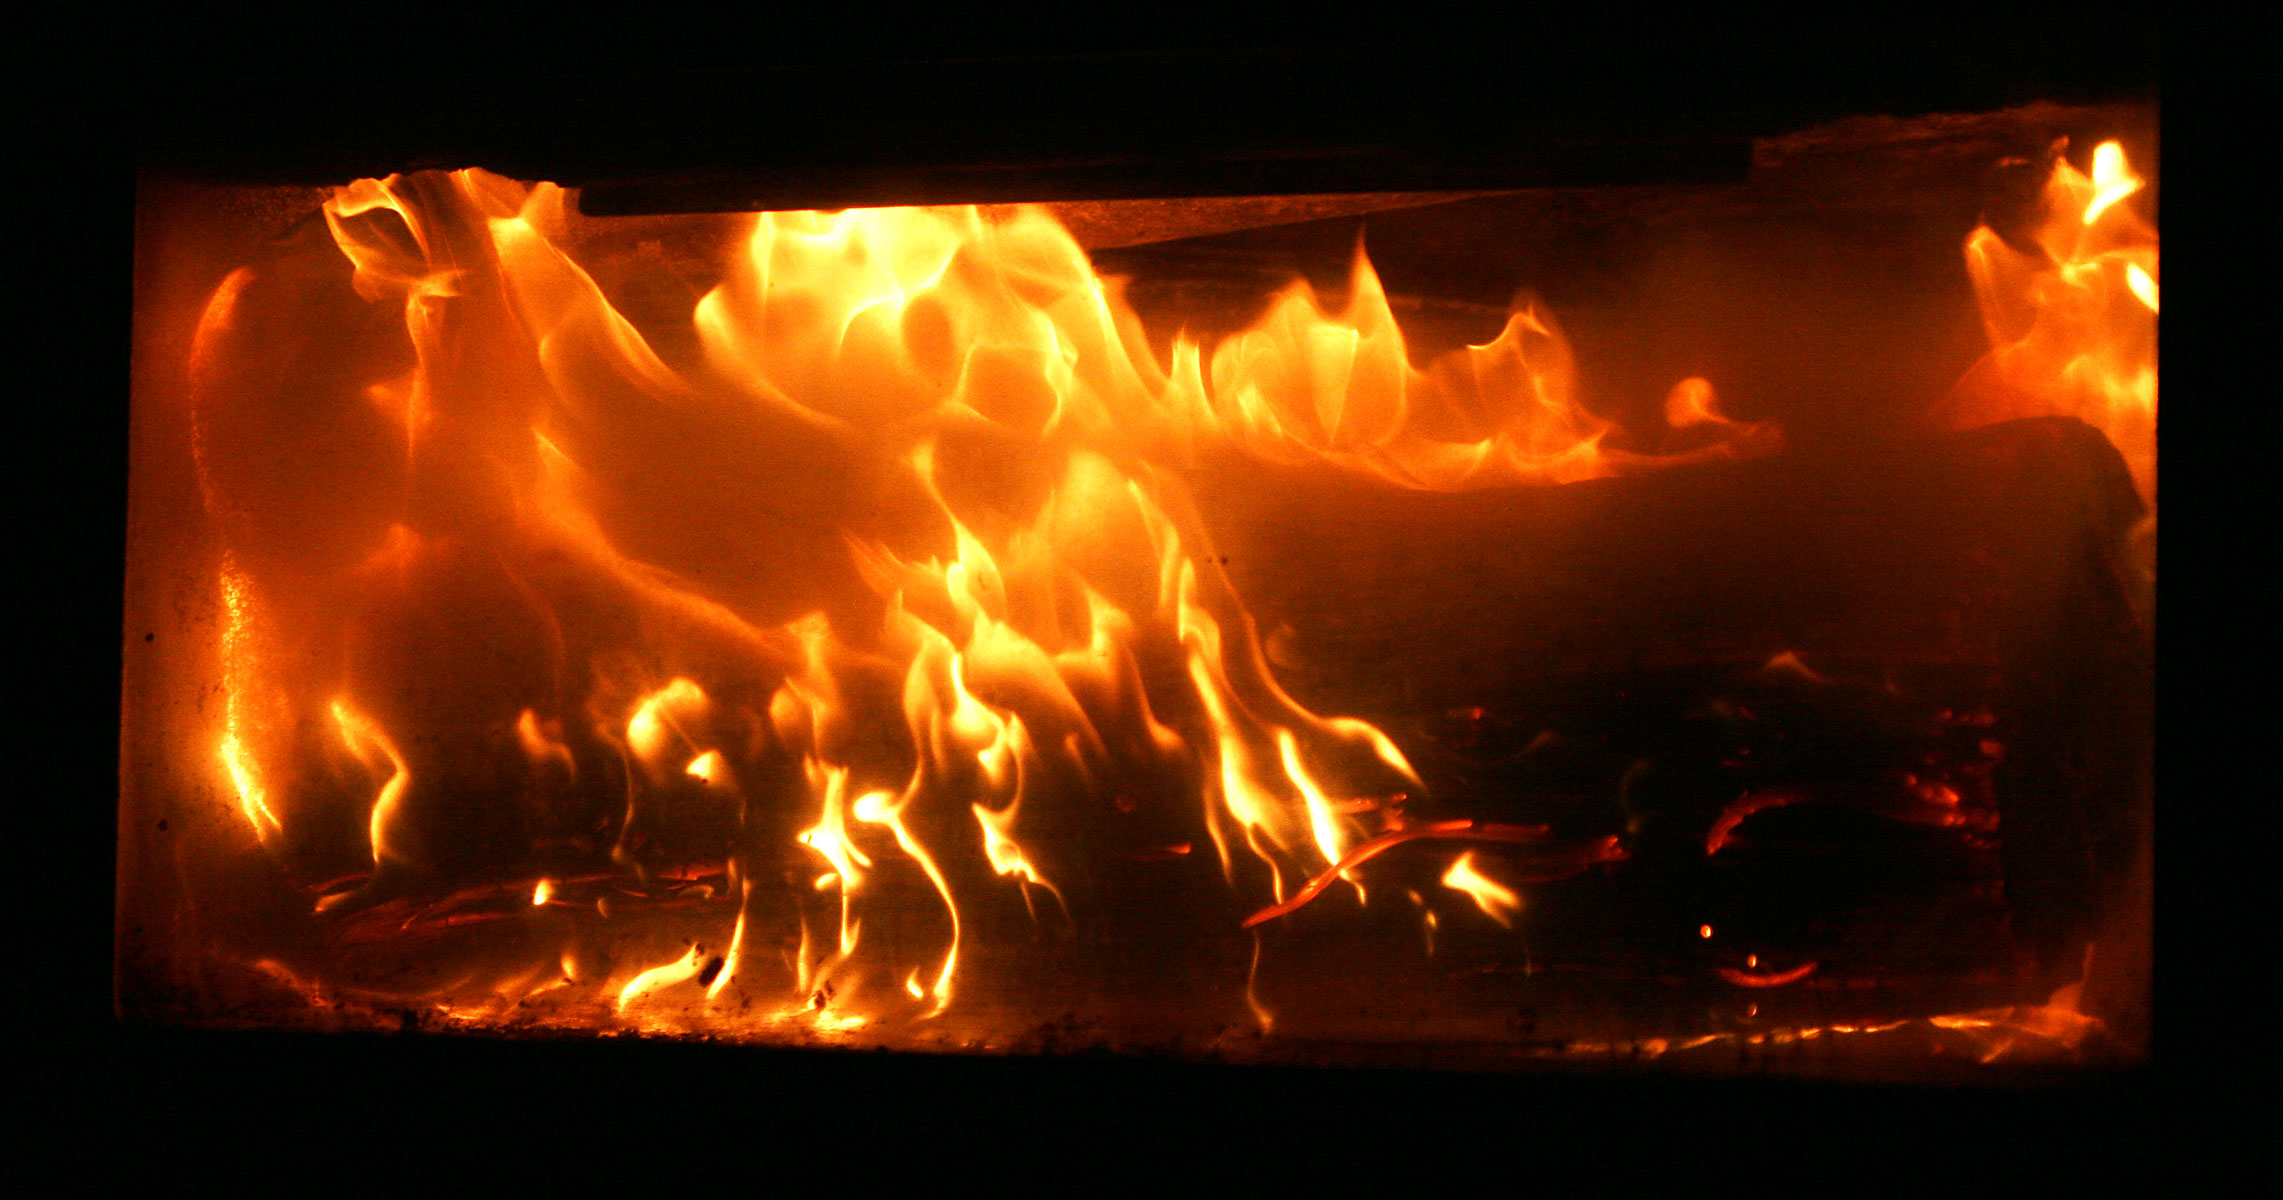 Log_in_fireplace